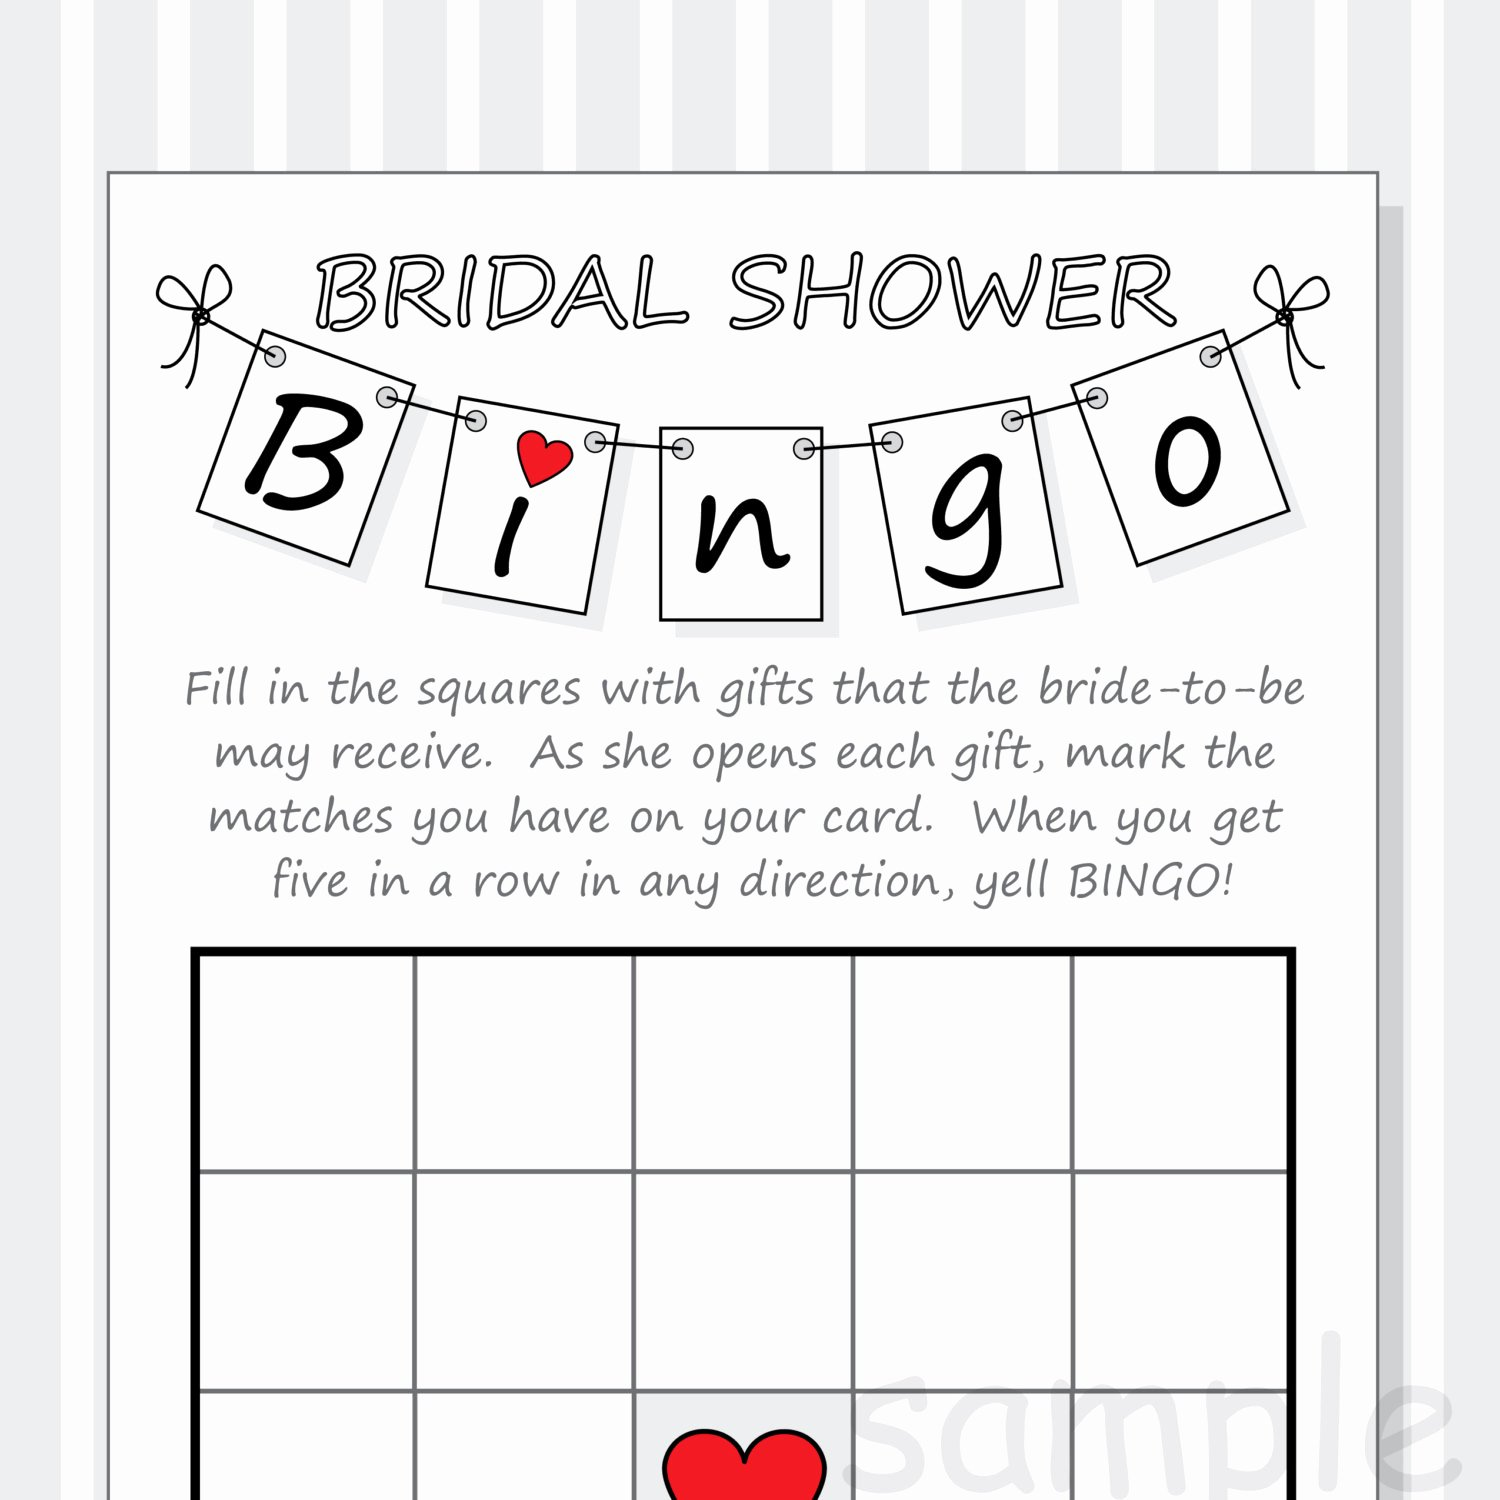 Bridal Shower Bingo Template New Diy Bridal Shower Bingo Printable Cards Pennant Design Red